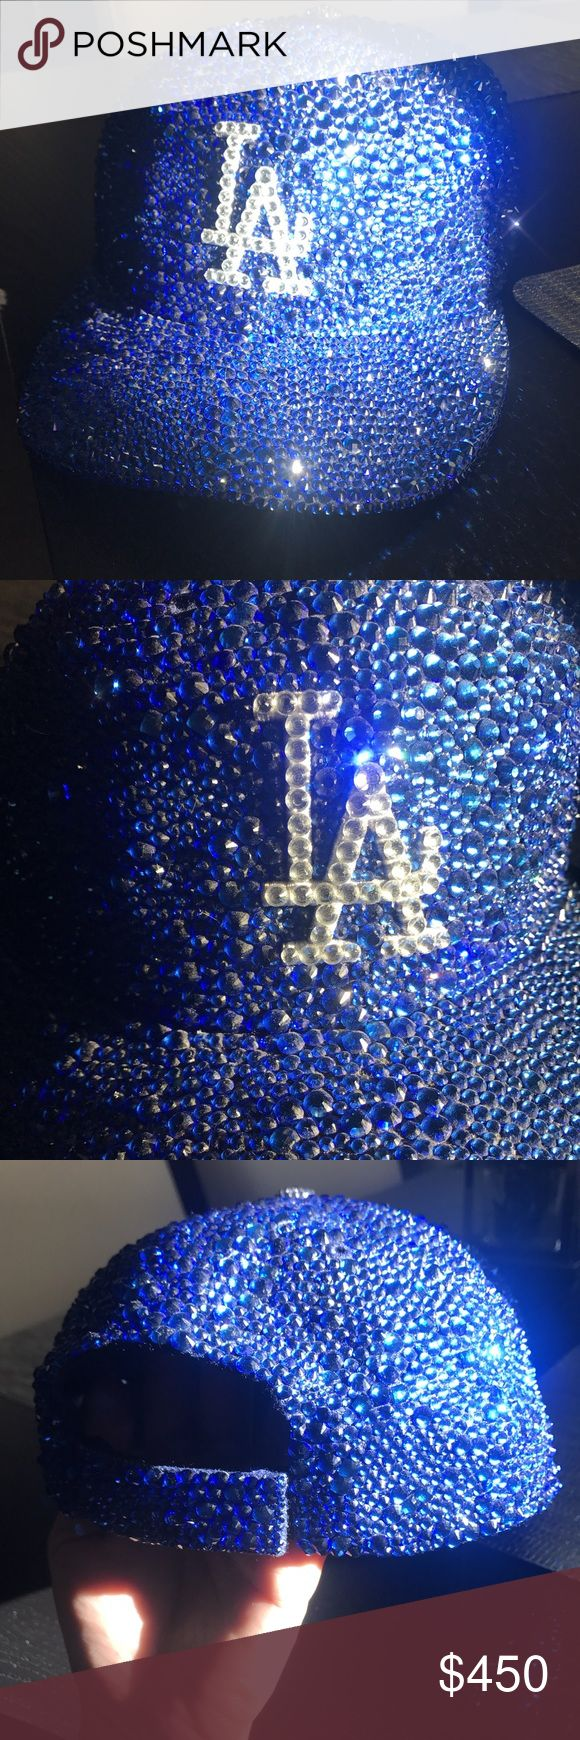 LA Dodgers - AdjustableSwarovski Encrusted Cap LA Dodgers Adjustable Baseball Cap  Cobalt Blue Swarovski Crystal Encrusted throughout by Lyfe of Bling!!   (Used twice)  Cleaned and ready for resale!  This one of a kind Dodgers Blue cap is perfect for the game and is Adjustable, 100% Authentic, and Encrusted by hand  Original Price $600, dropping price & asking $450, as it is used  SERIOUS INQUIRIES ONLY, this is a one of a kind piece done by hand LA DODGERS Accessories Hats